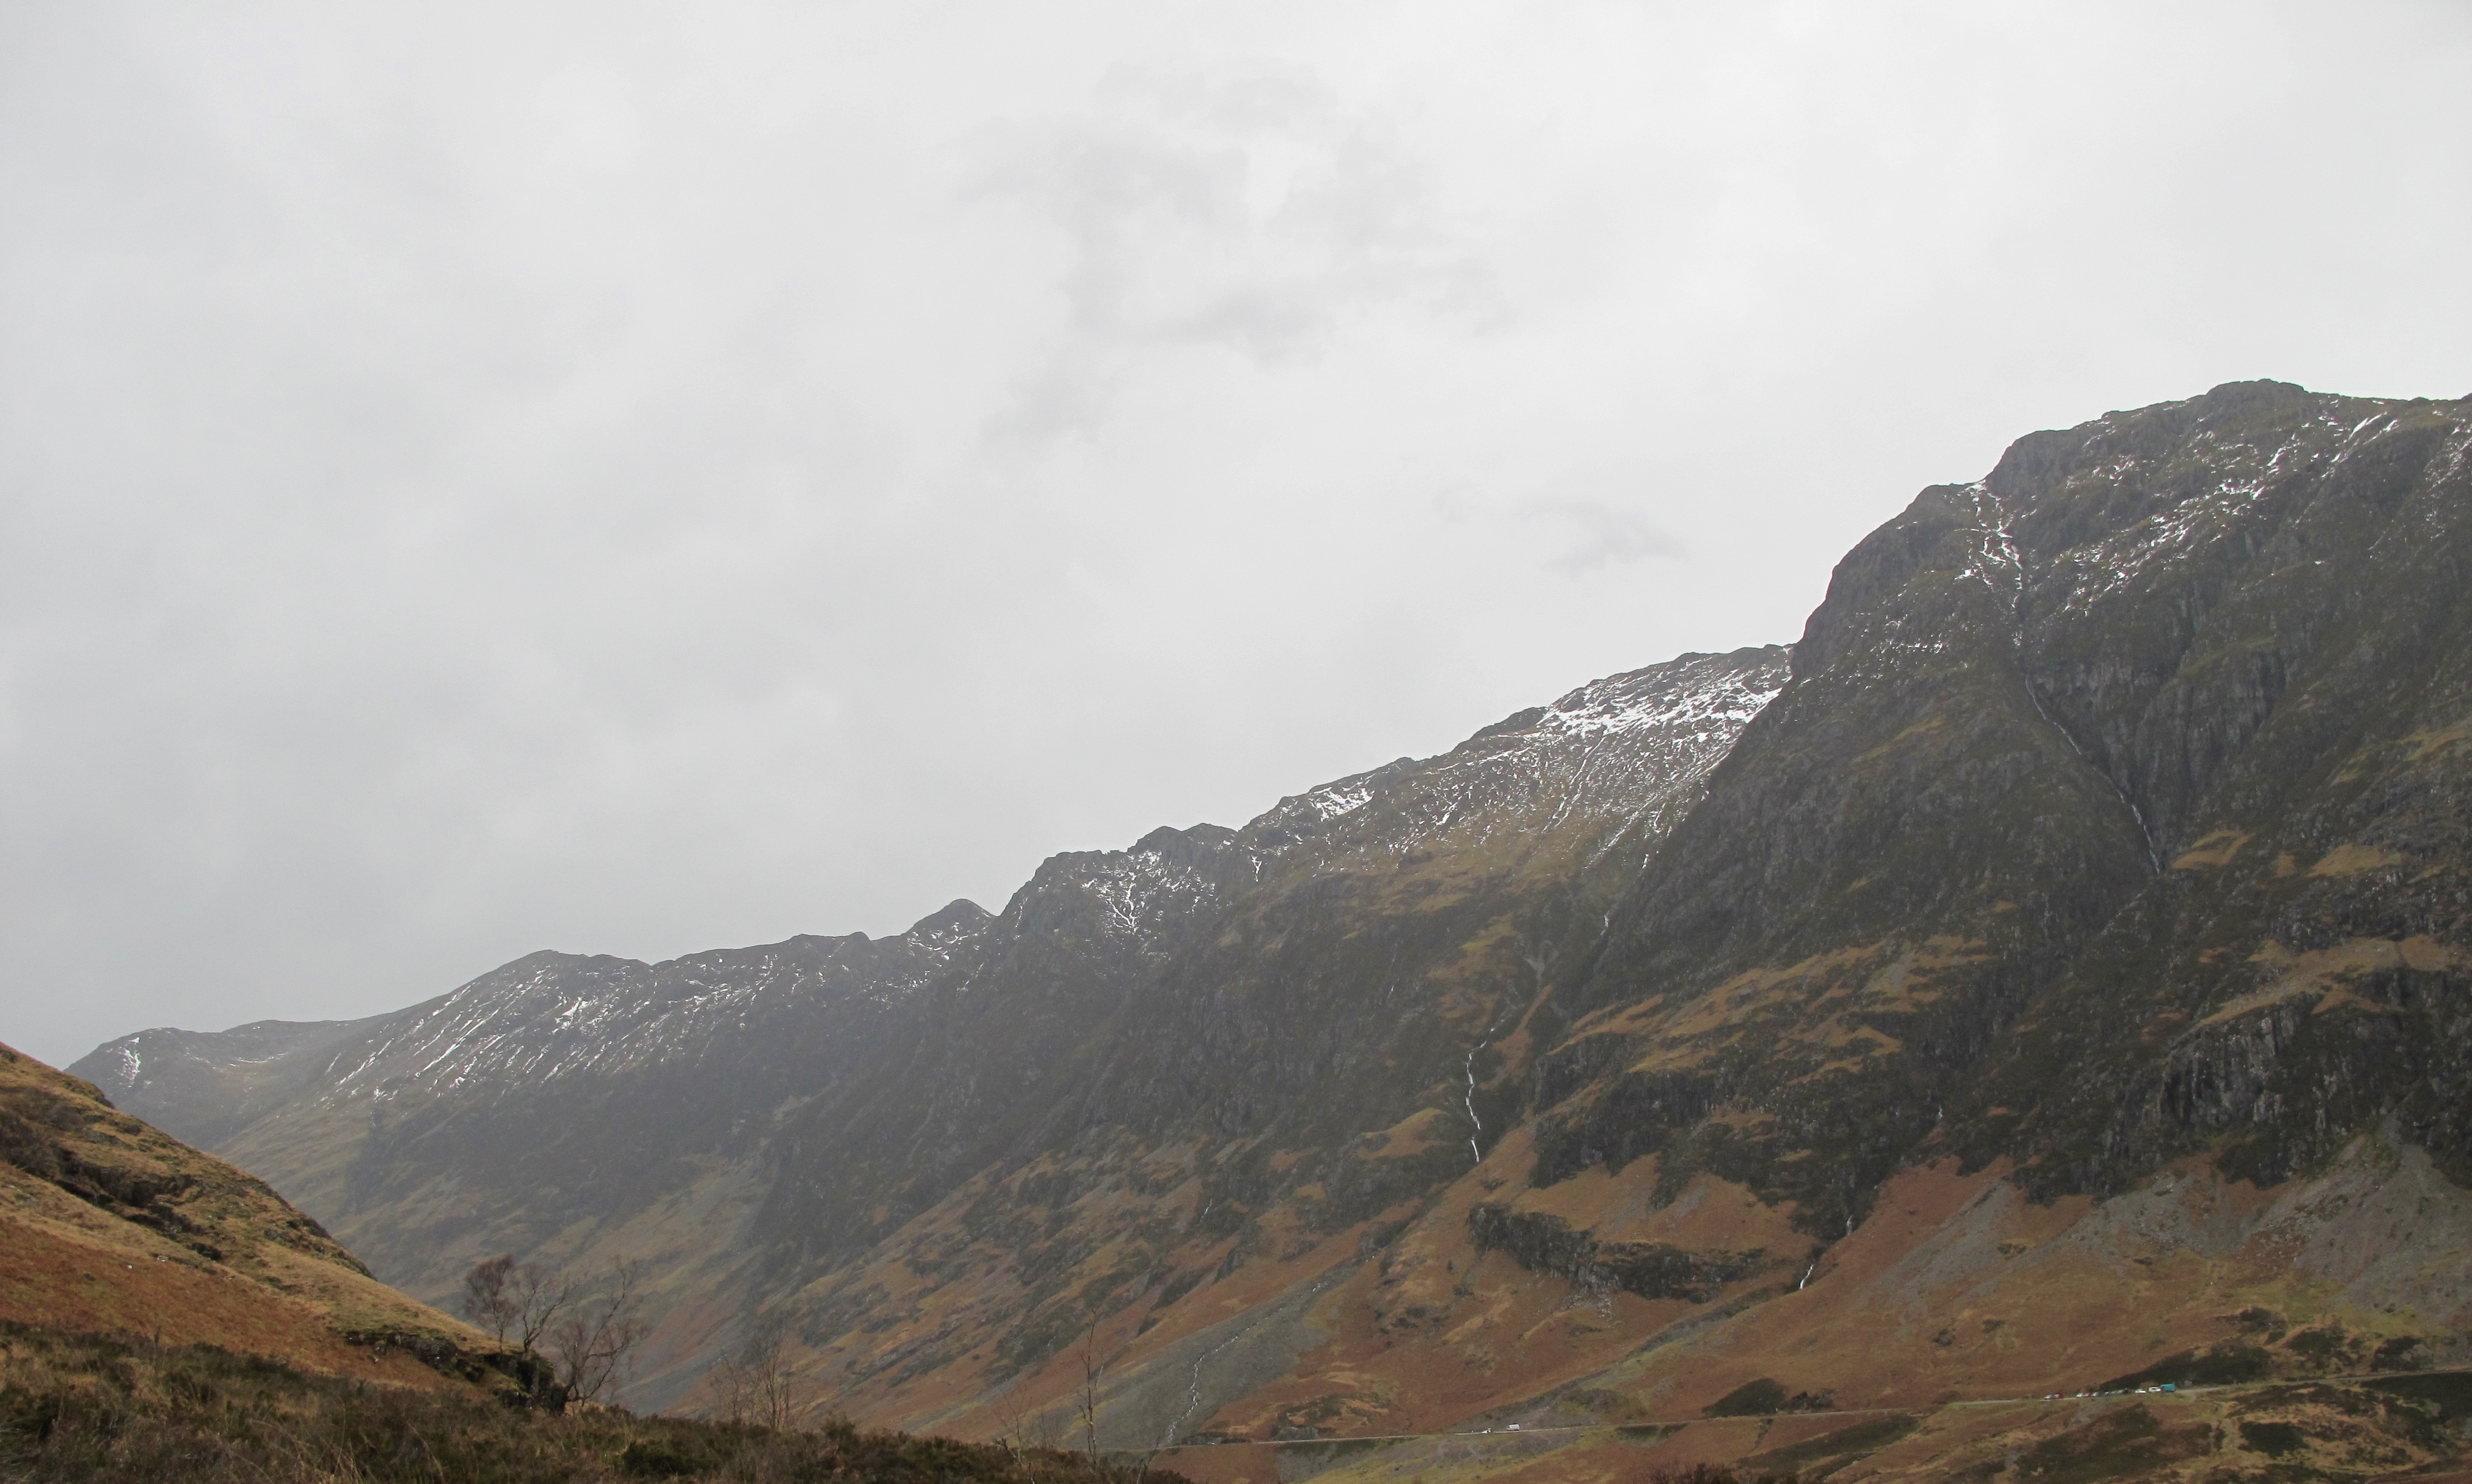 South aspect of the Aonach Eagach ridge